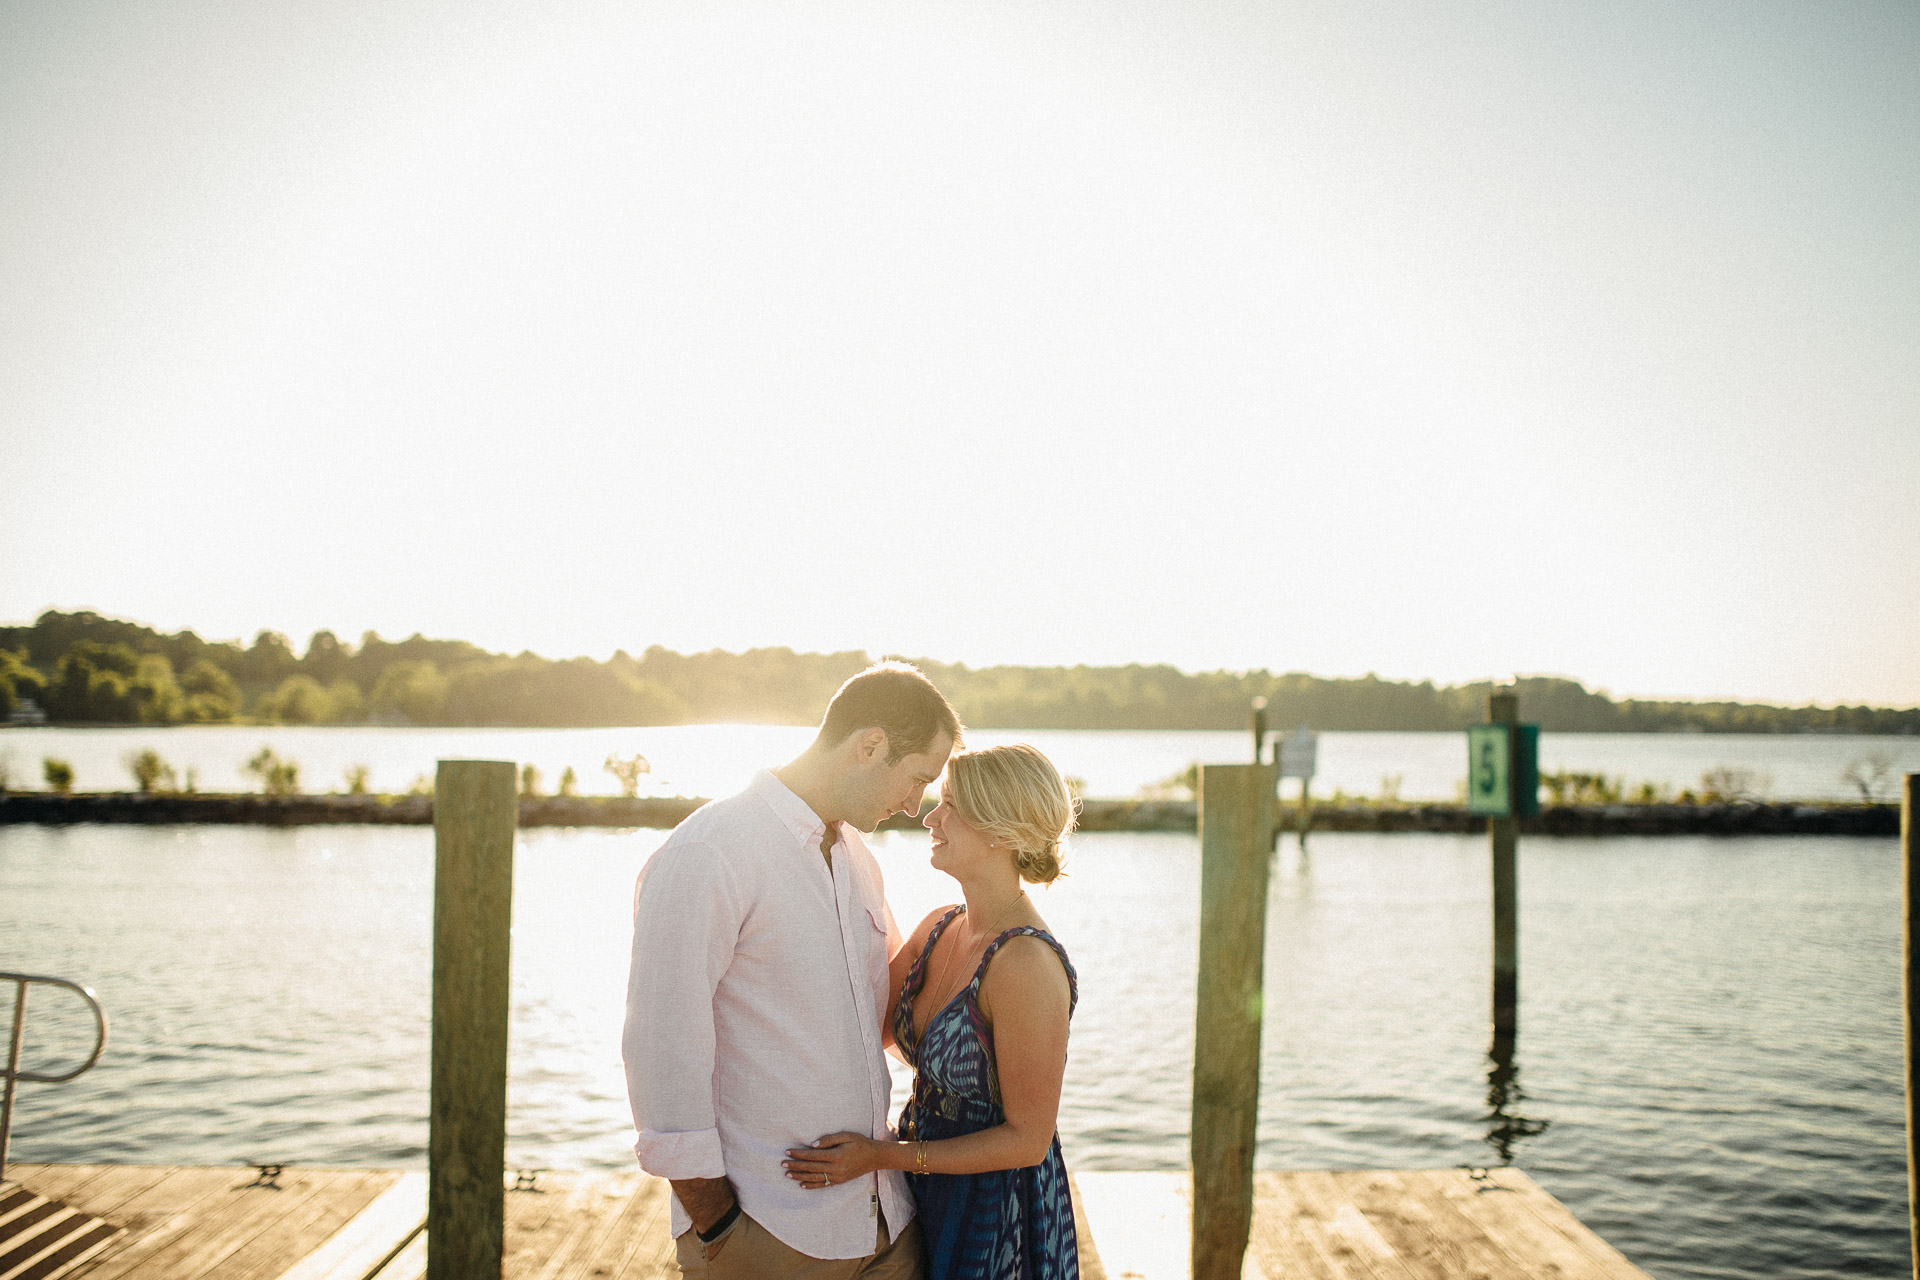 Kristin_Sasa_Engagement_Herrington_Maryland_JeanLaurentGaudy_043